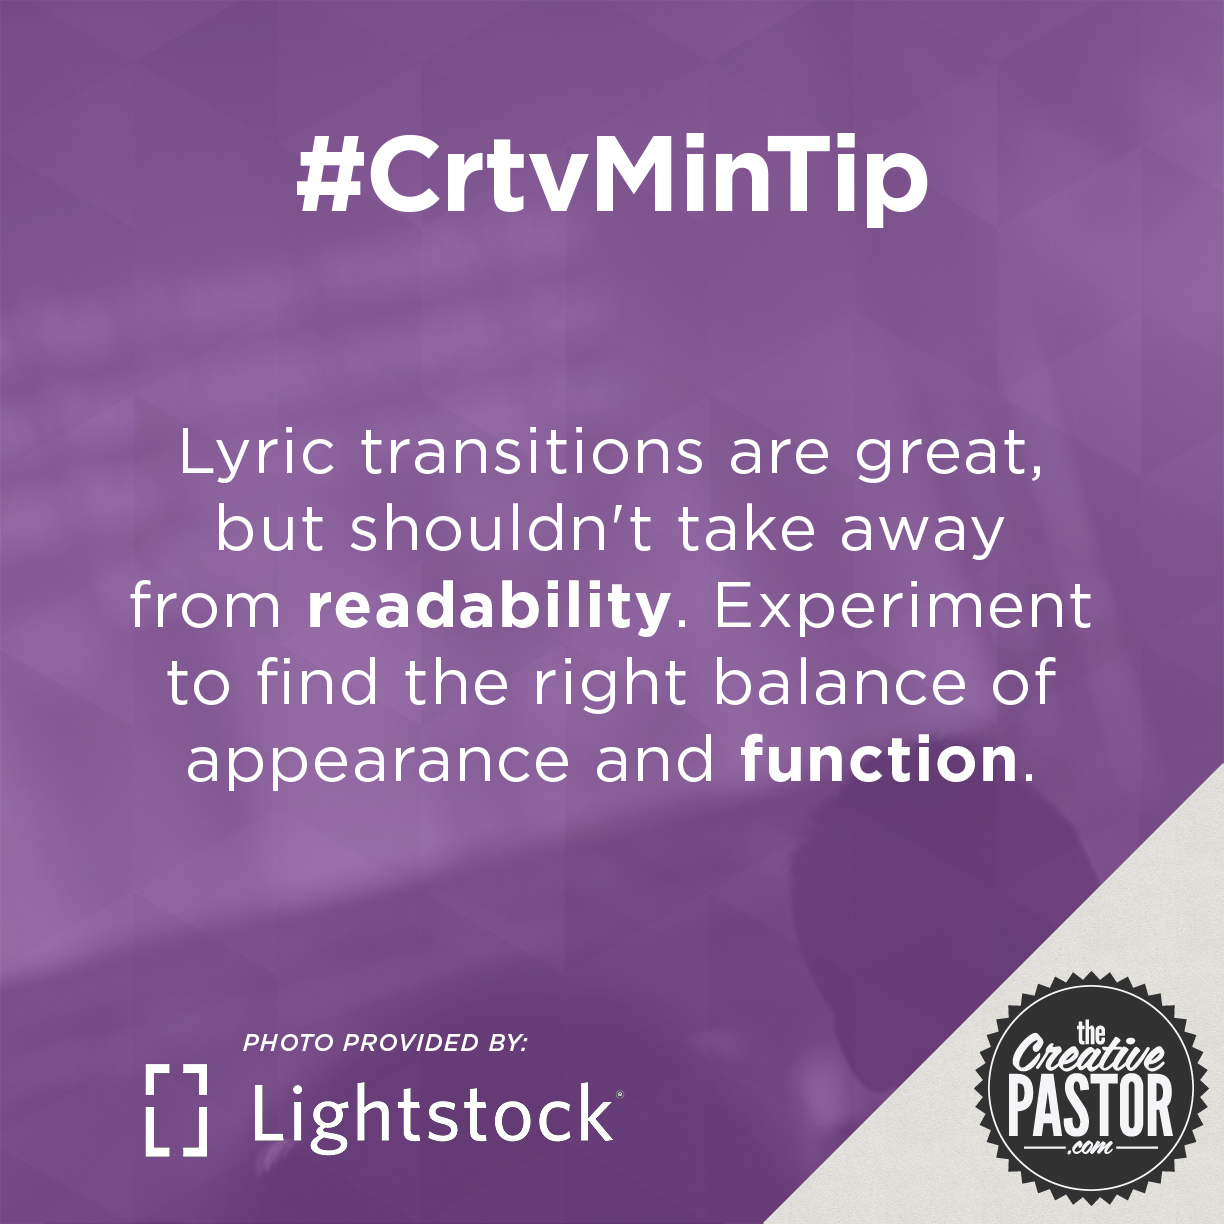 Lyric transitions are great, but shouldn't take away from readability. Experiment to find the right balance of appearance and function.